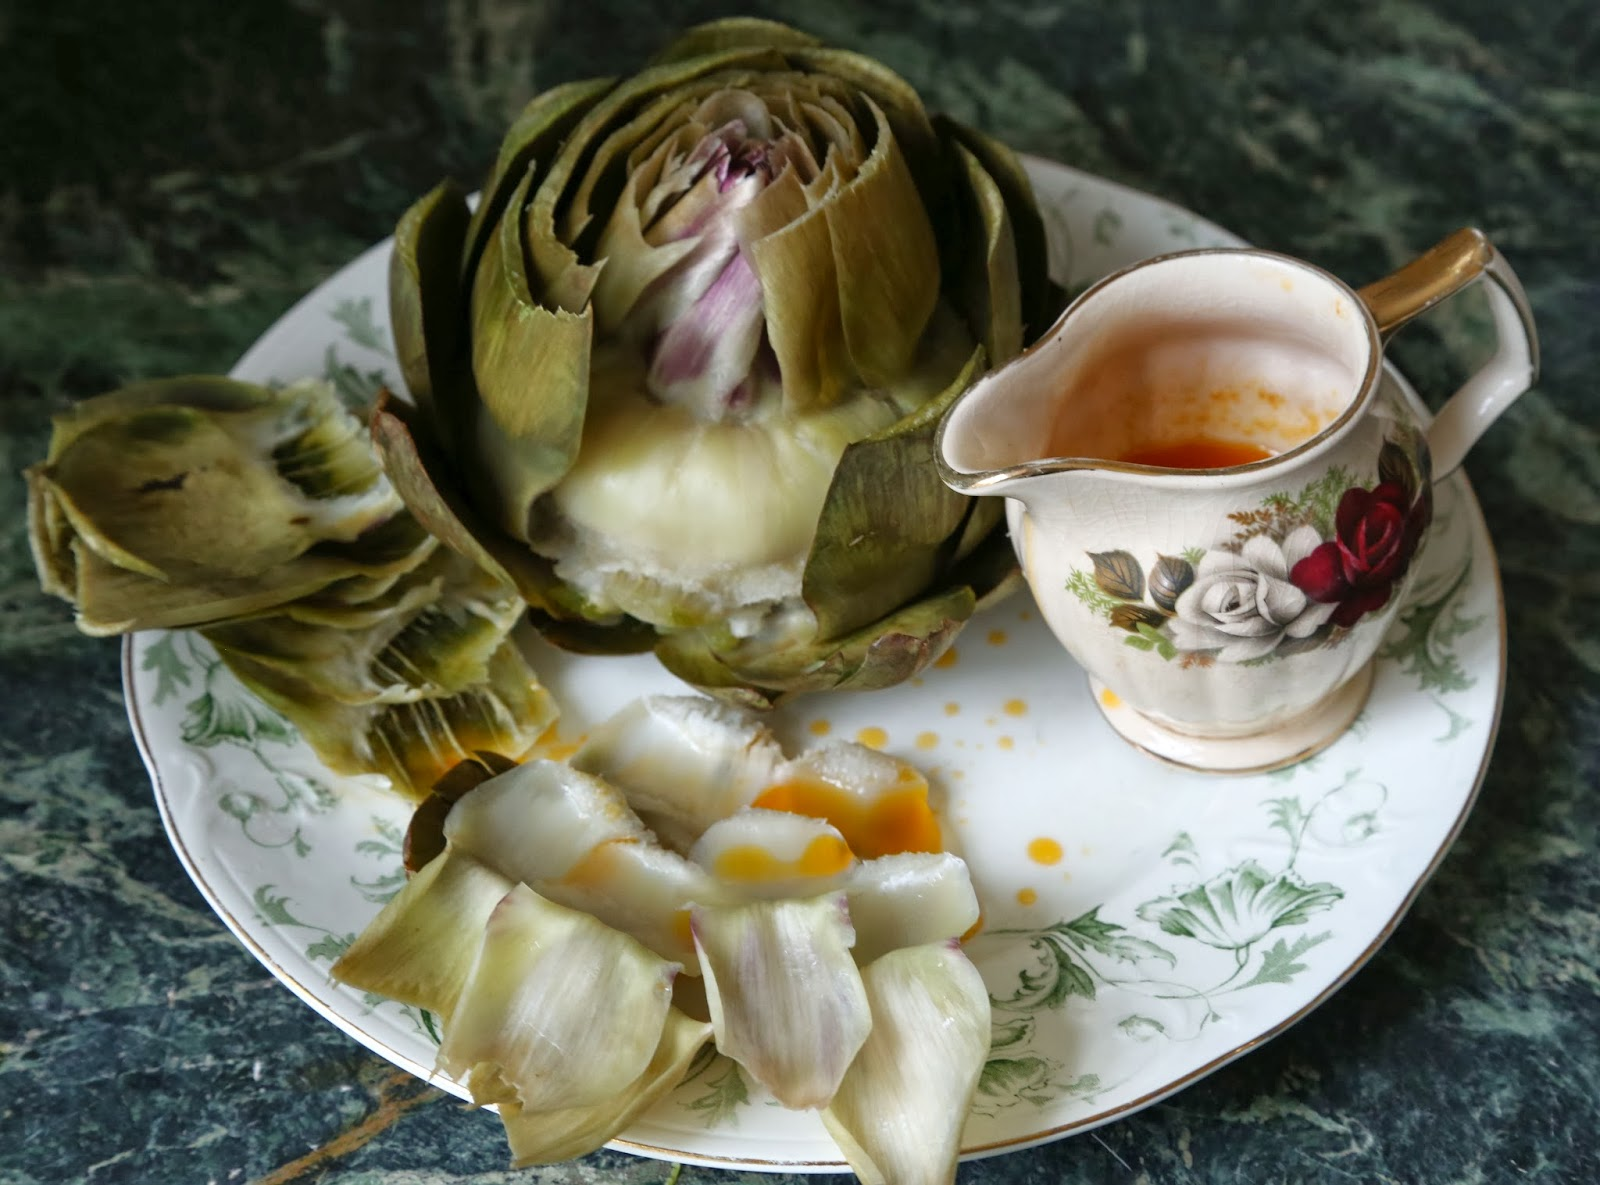 Steamed artichoke with chipotle, butter and lime dip